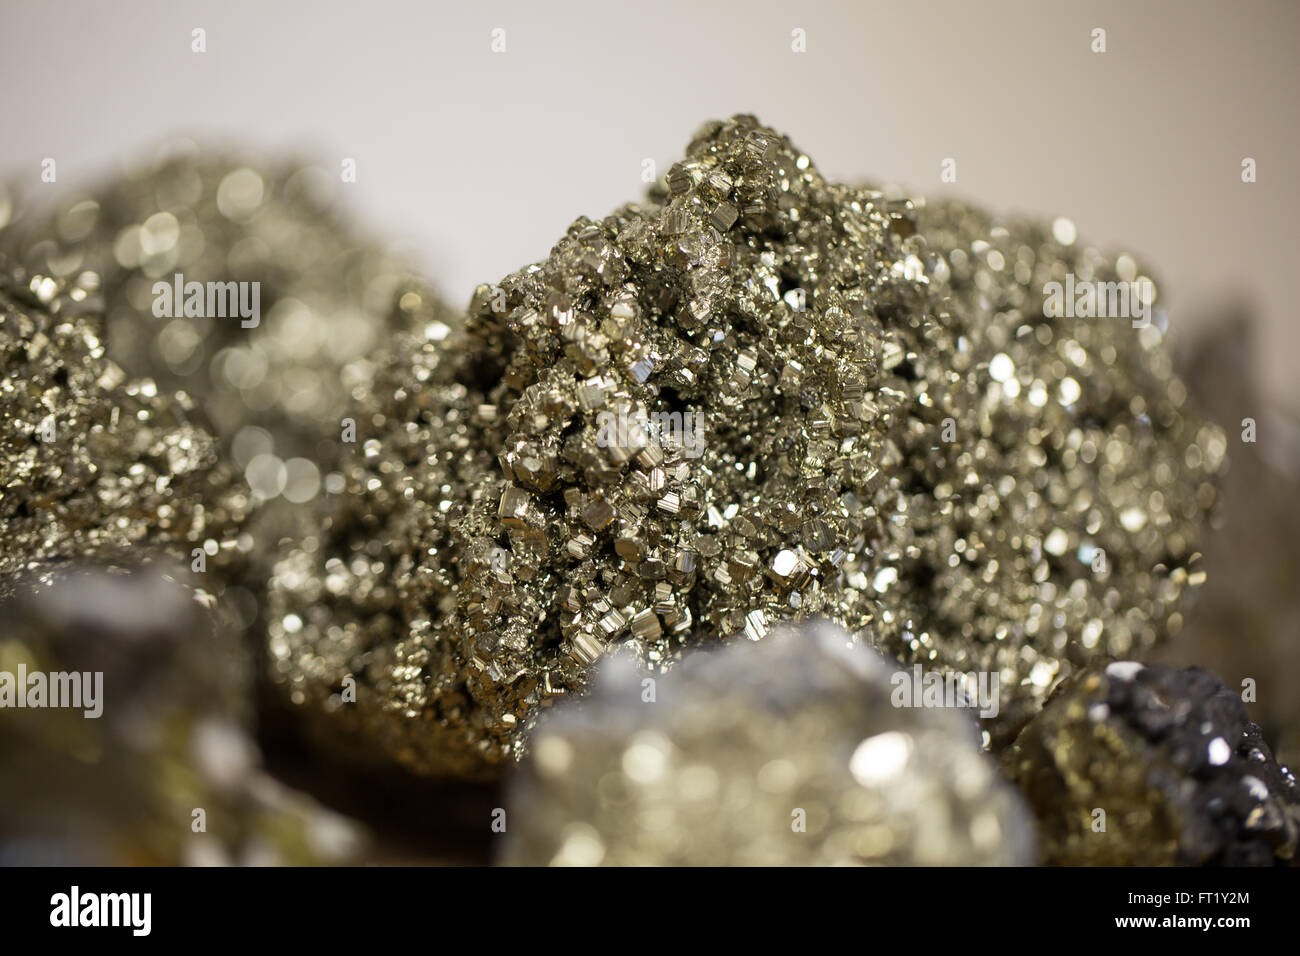 Pyrite also known as fools gold - Stock Image